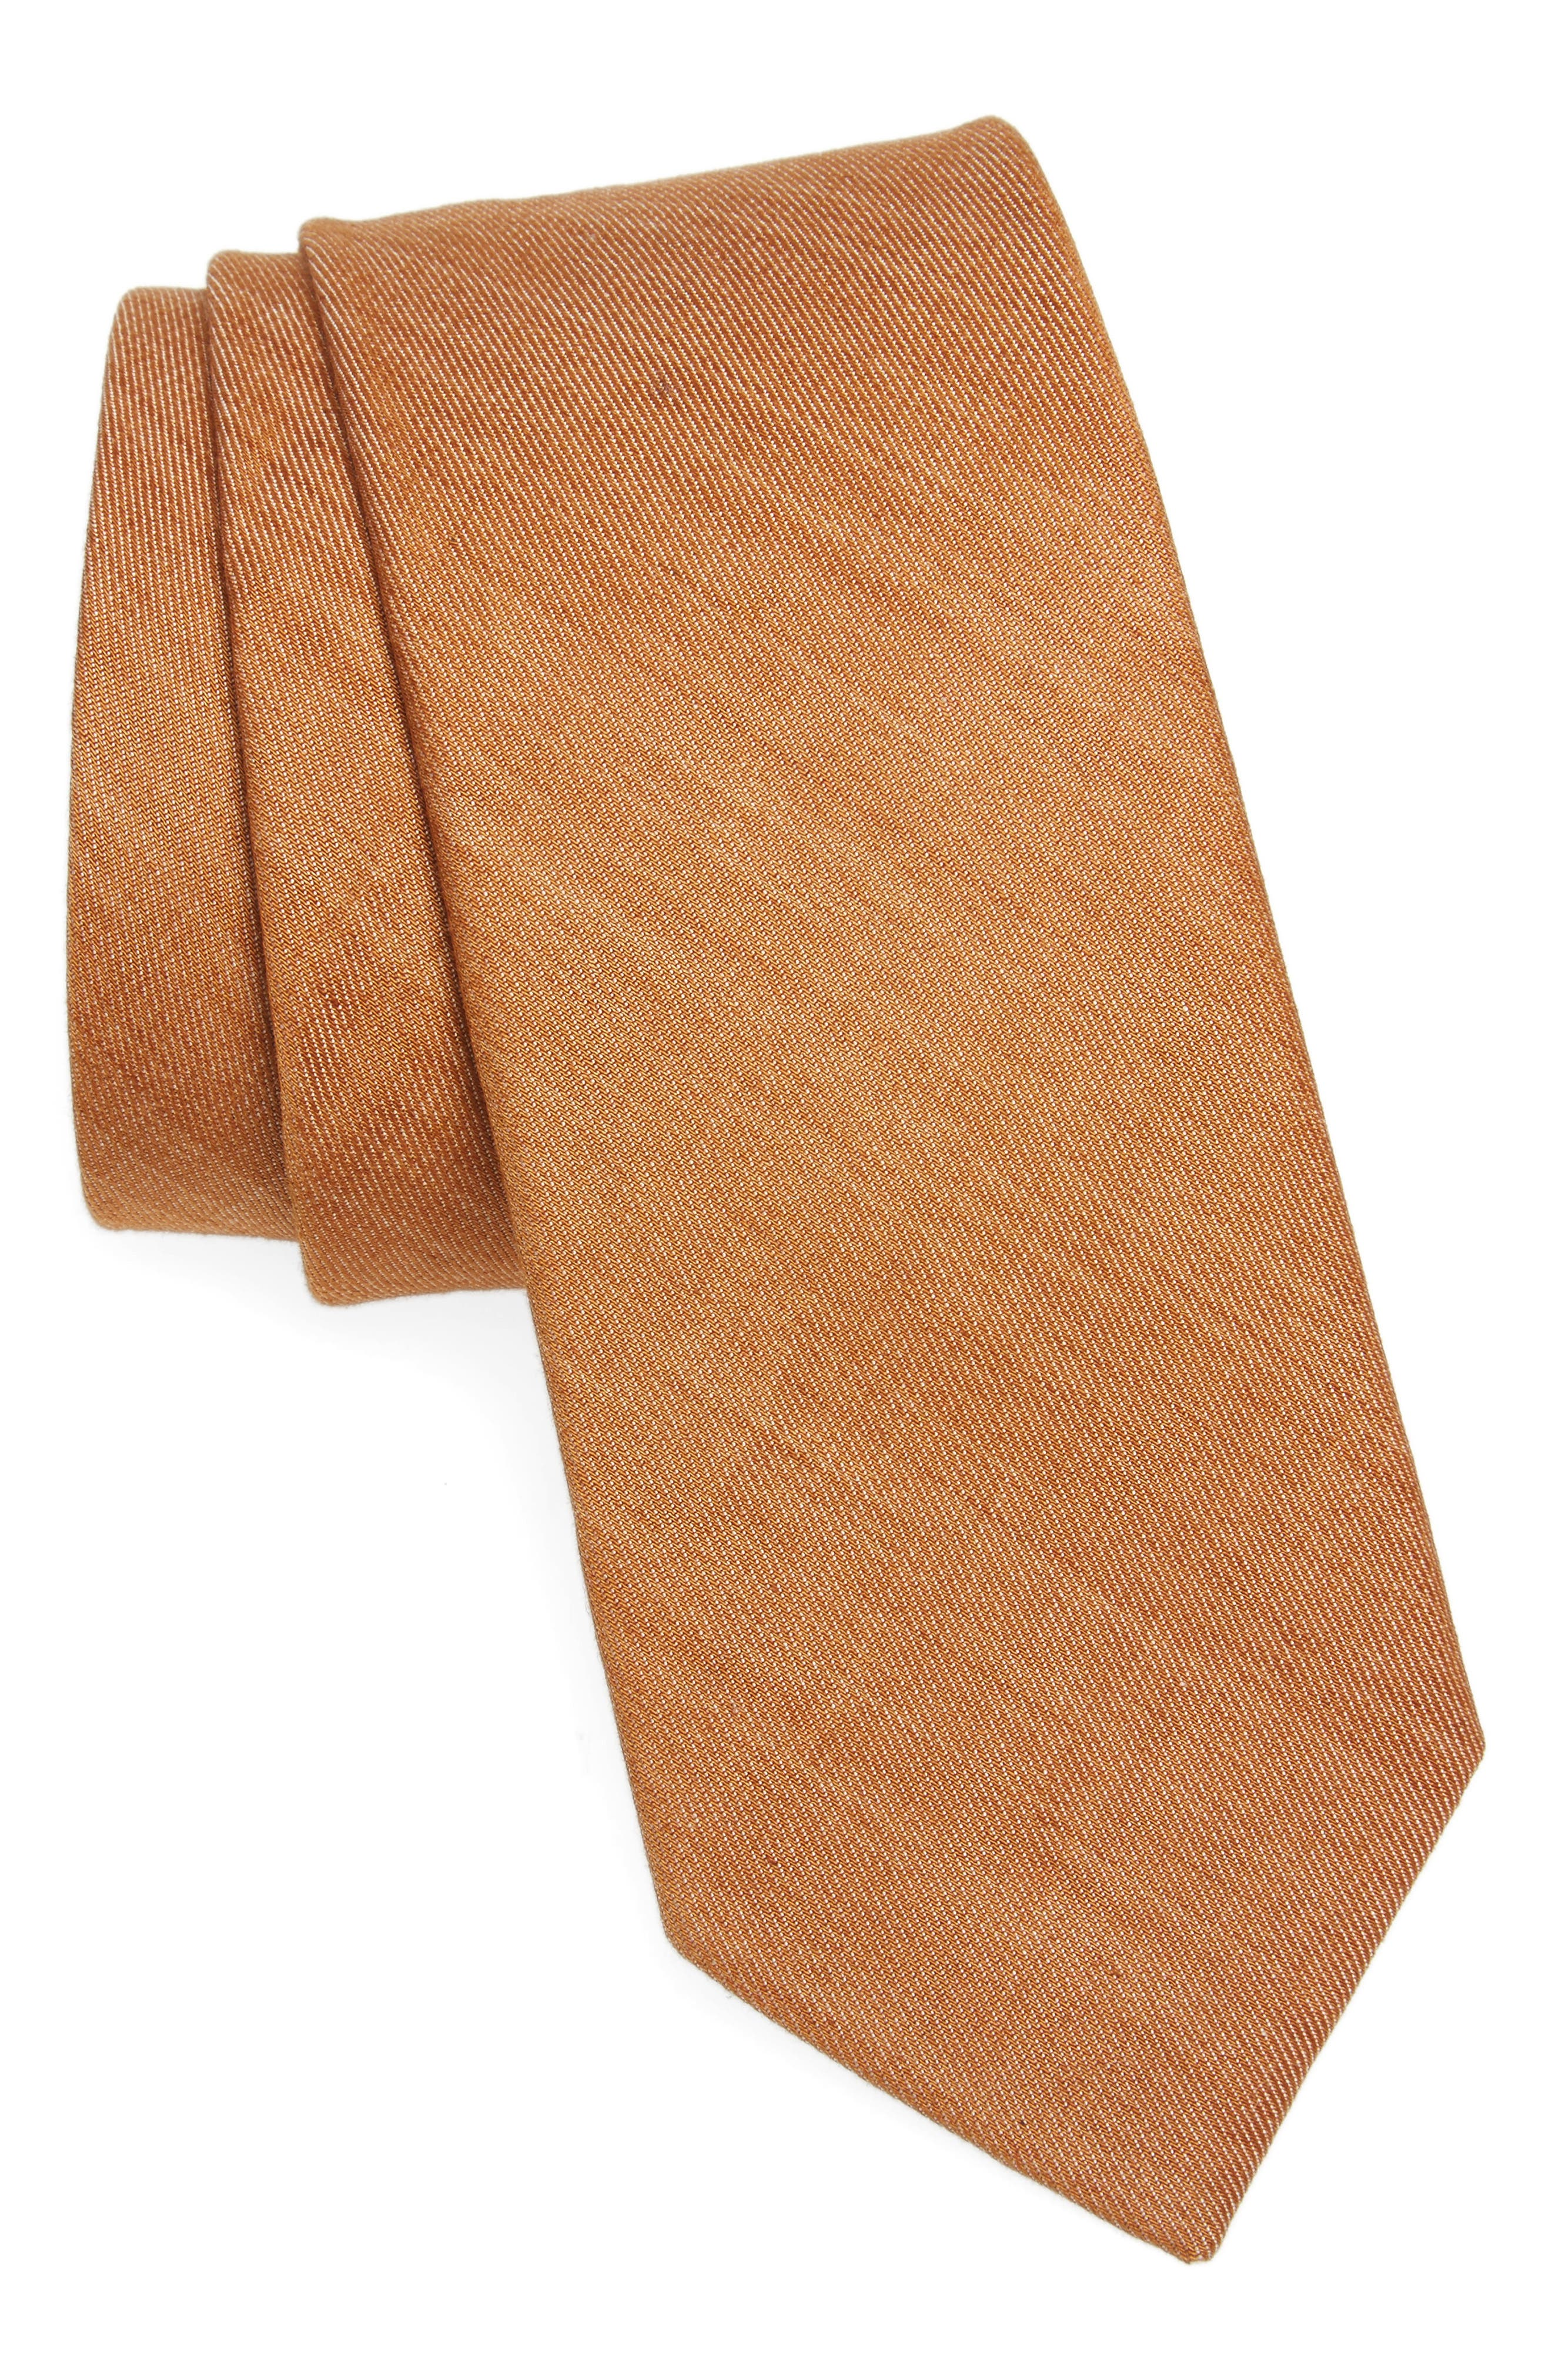 Main Image - 1901 Abbey Solid Cotton Tie